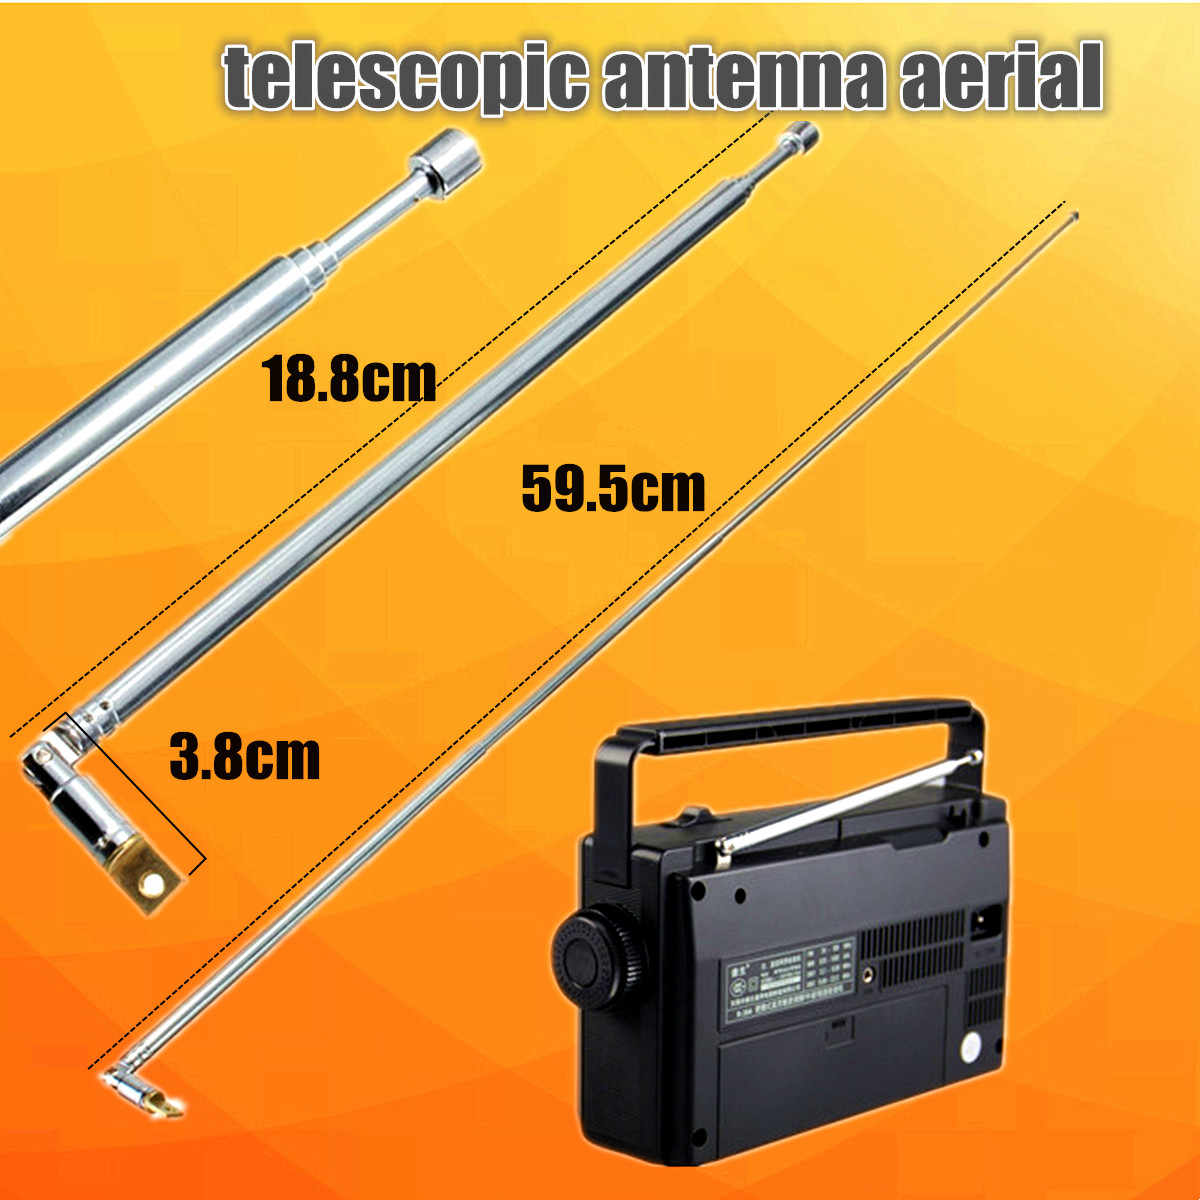 New Arrival Best Promotion Durable 310991702355 AM FM Radio Telescopic Antenna Replacement 63cm Length 4 Sections